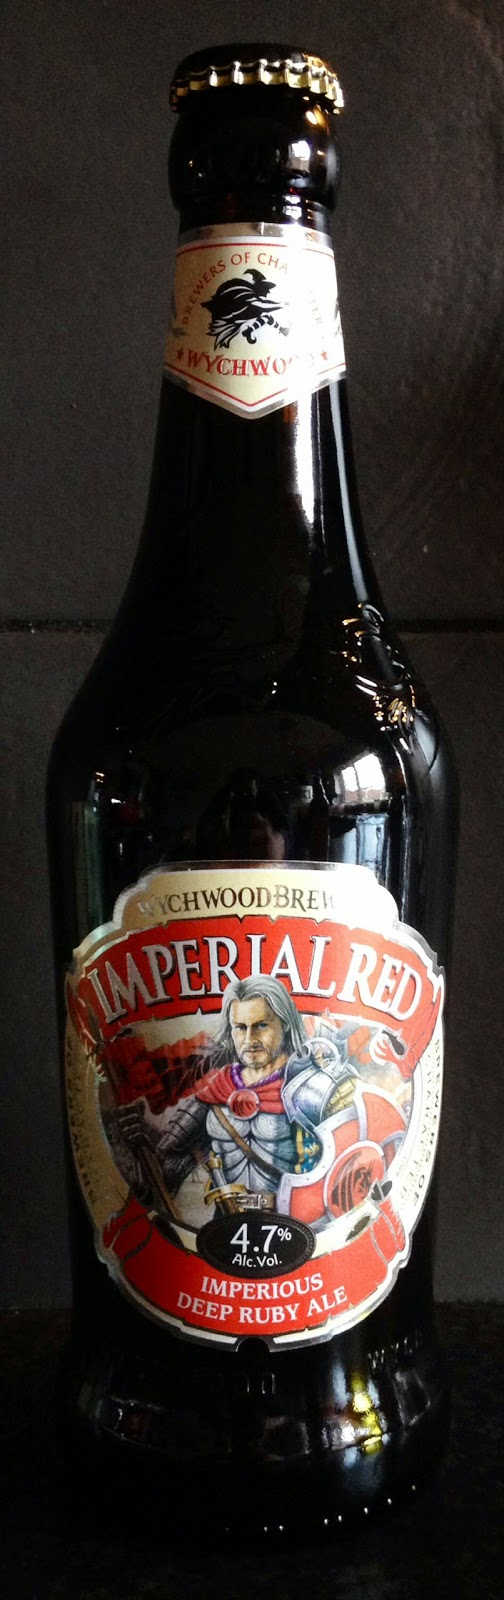 Imperial Red (Wychwood)